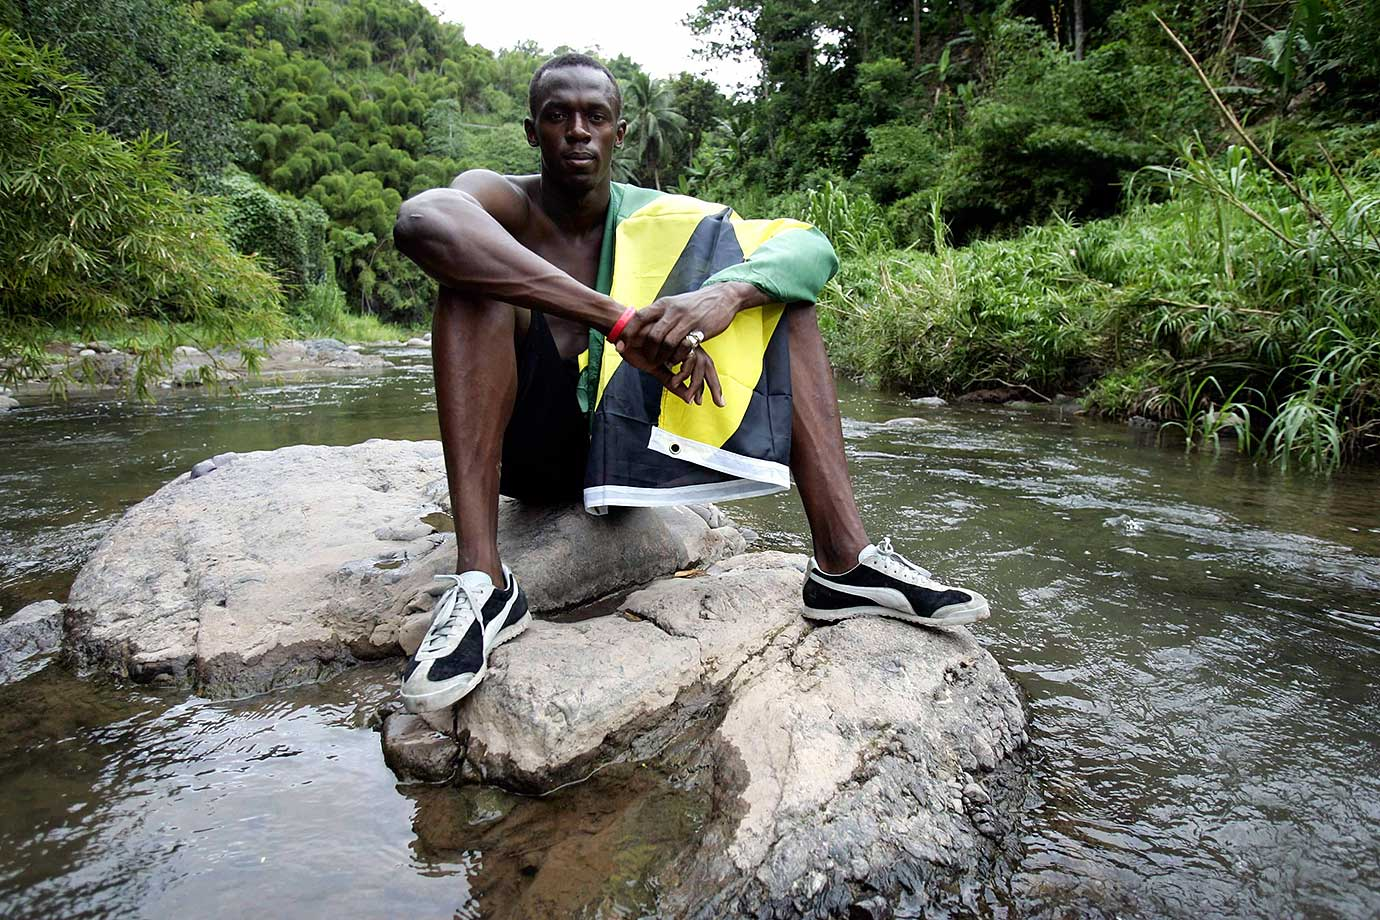 Bolt, pictured here in his native Jamaica, burst onto the track and field scene at 14. In 2002, at 16, Bolt set the world junior record for the 200 at 19.93 seconds.